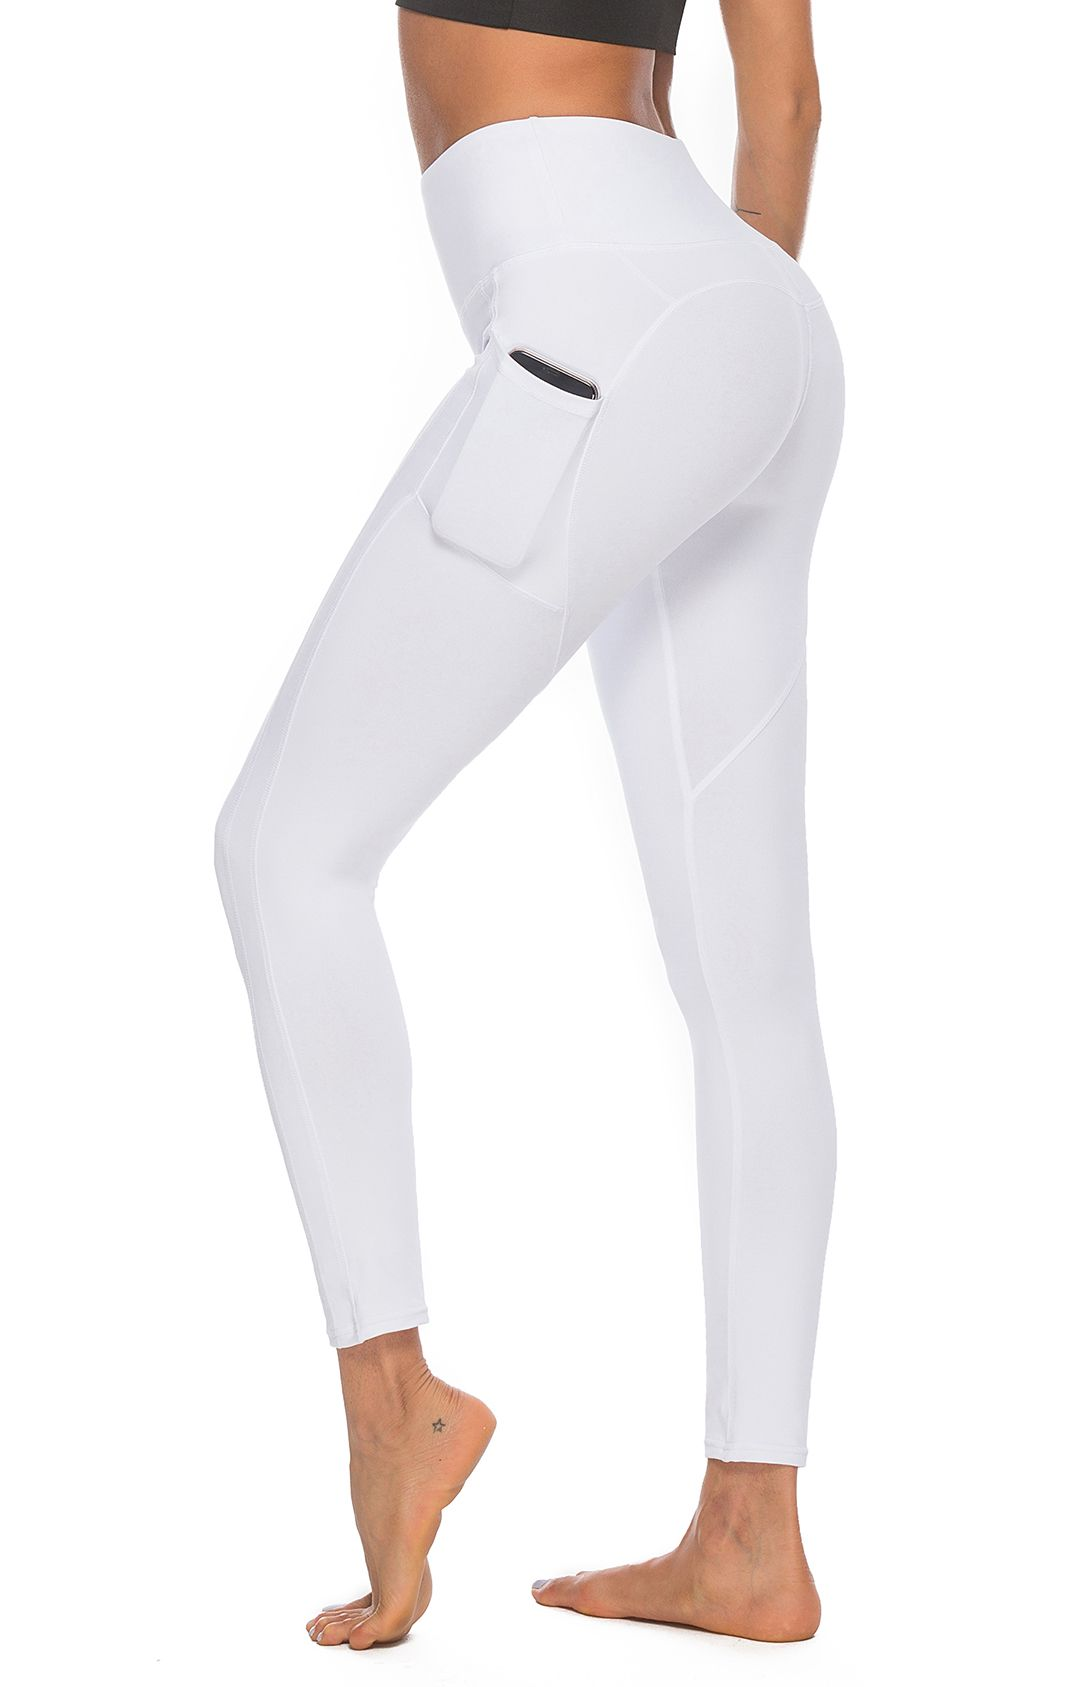 5fa8a156062ab Women's Workout Leggings with Pockets High Waist Active Yoga Pants for Running  Sports Fitness Gym White